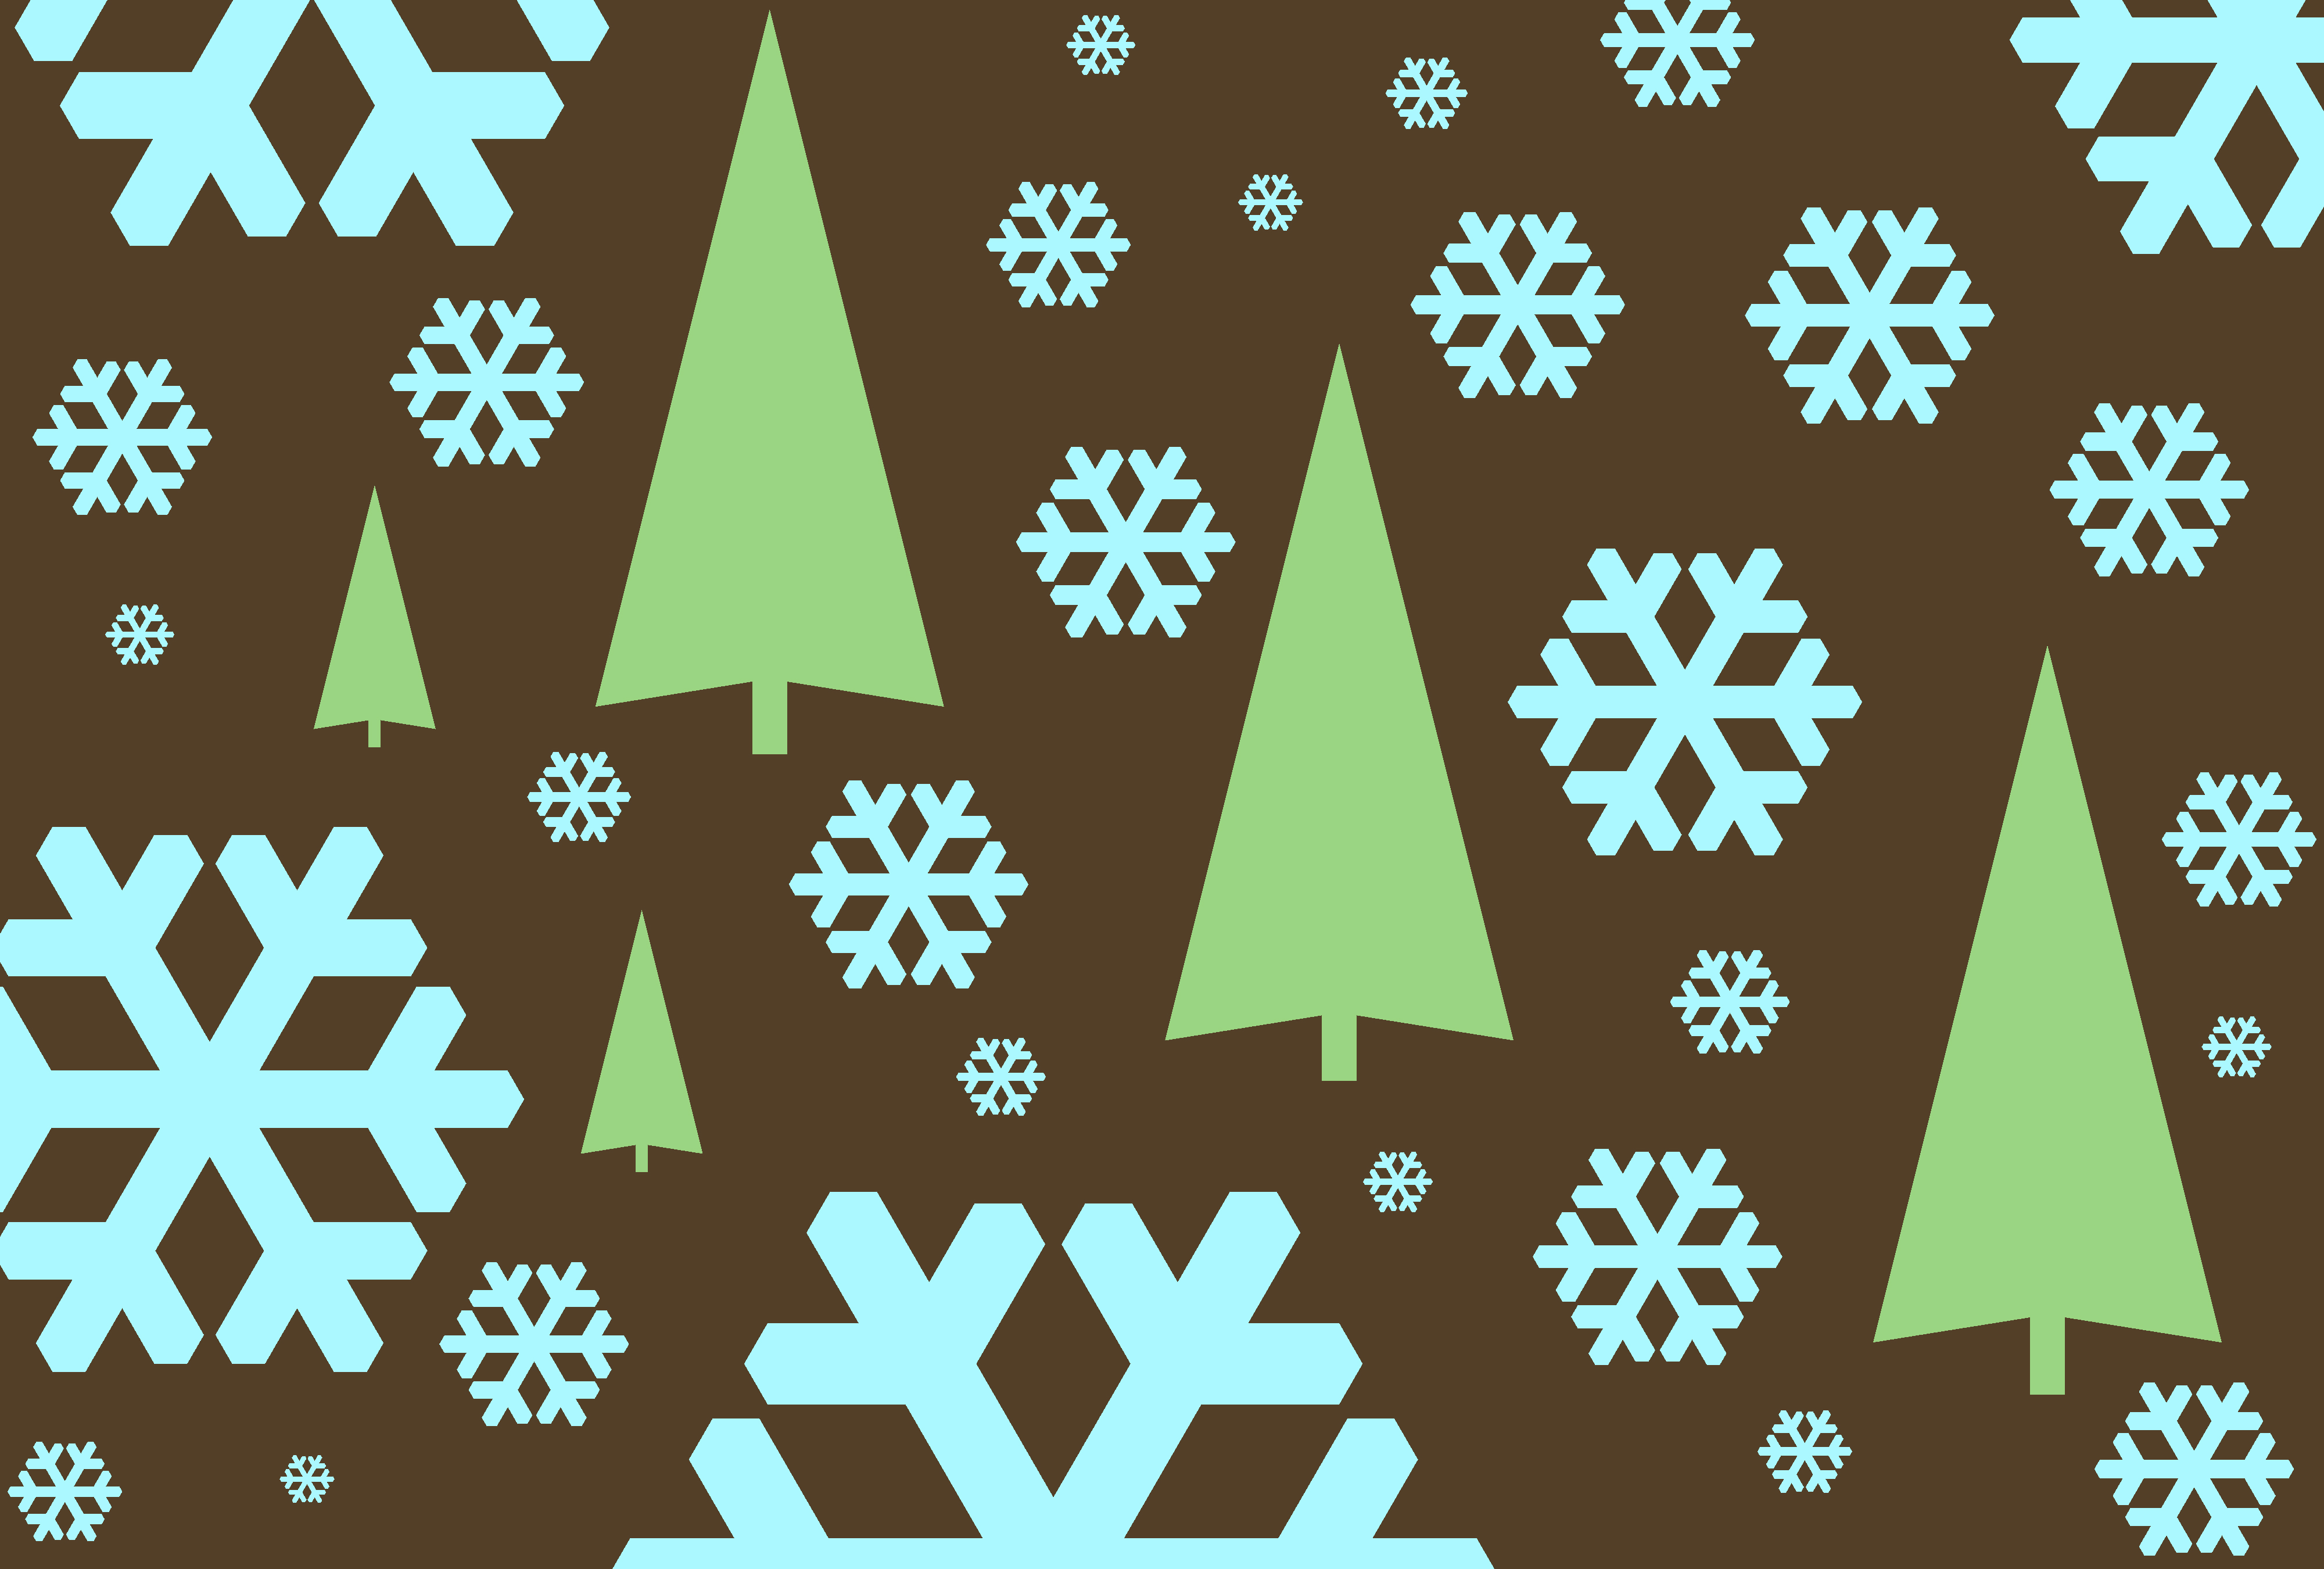 Free Stock Photo 1533 Graphic Snowflakes And Trees Freeimageslive